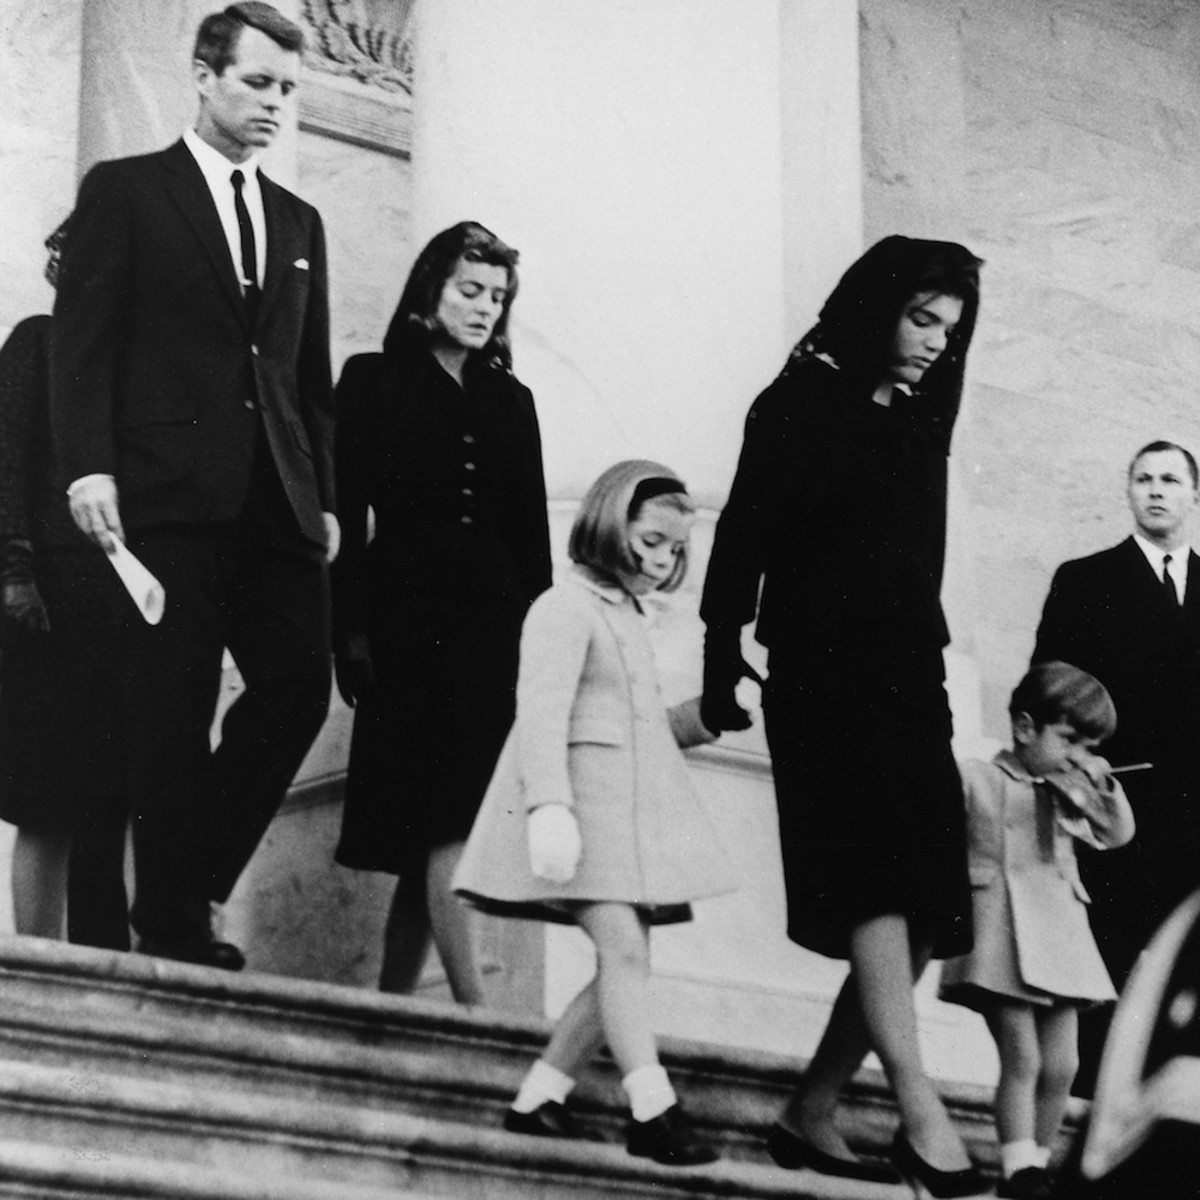 The Family Leaving The Funeral Ceremony of John F. Kennedy, 25 November 1963